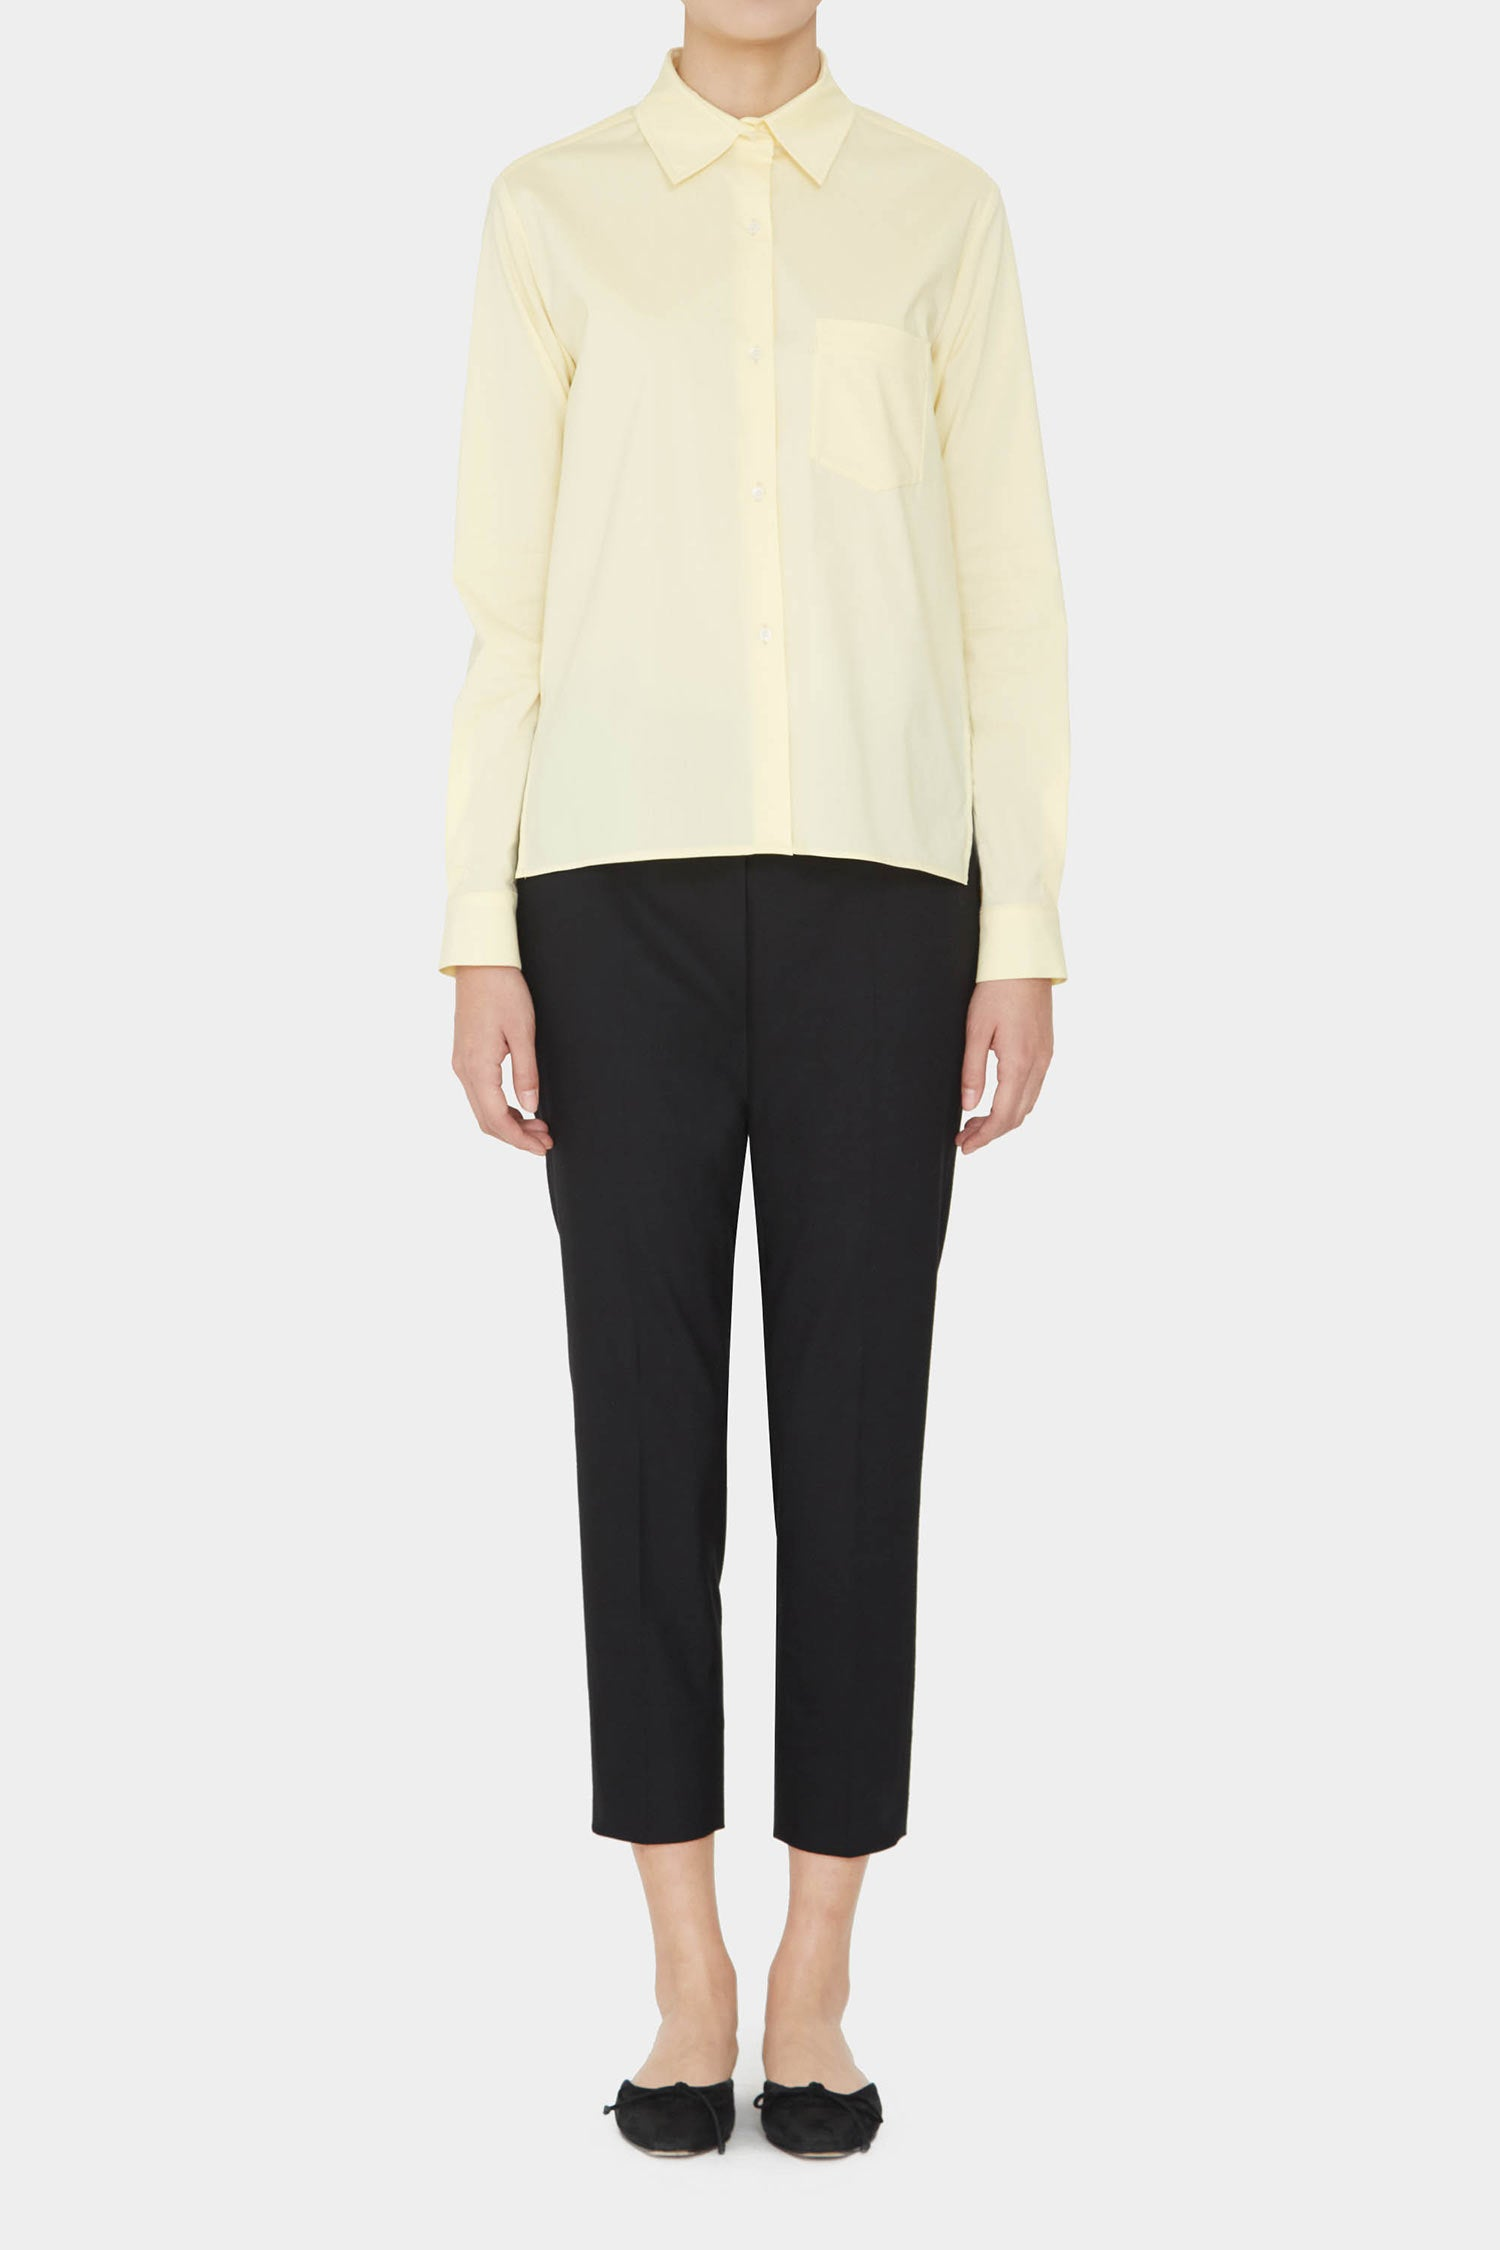 LEMON ELLEN TIDY SHIRT